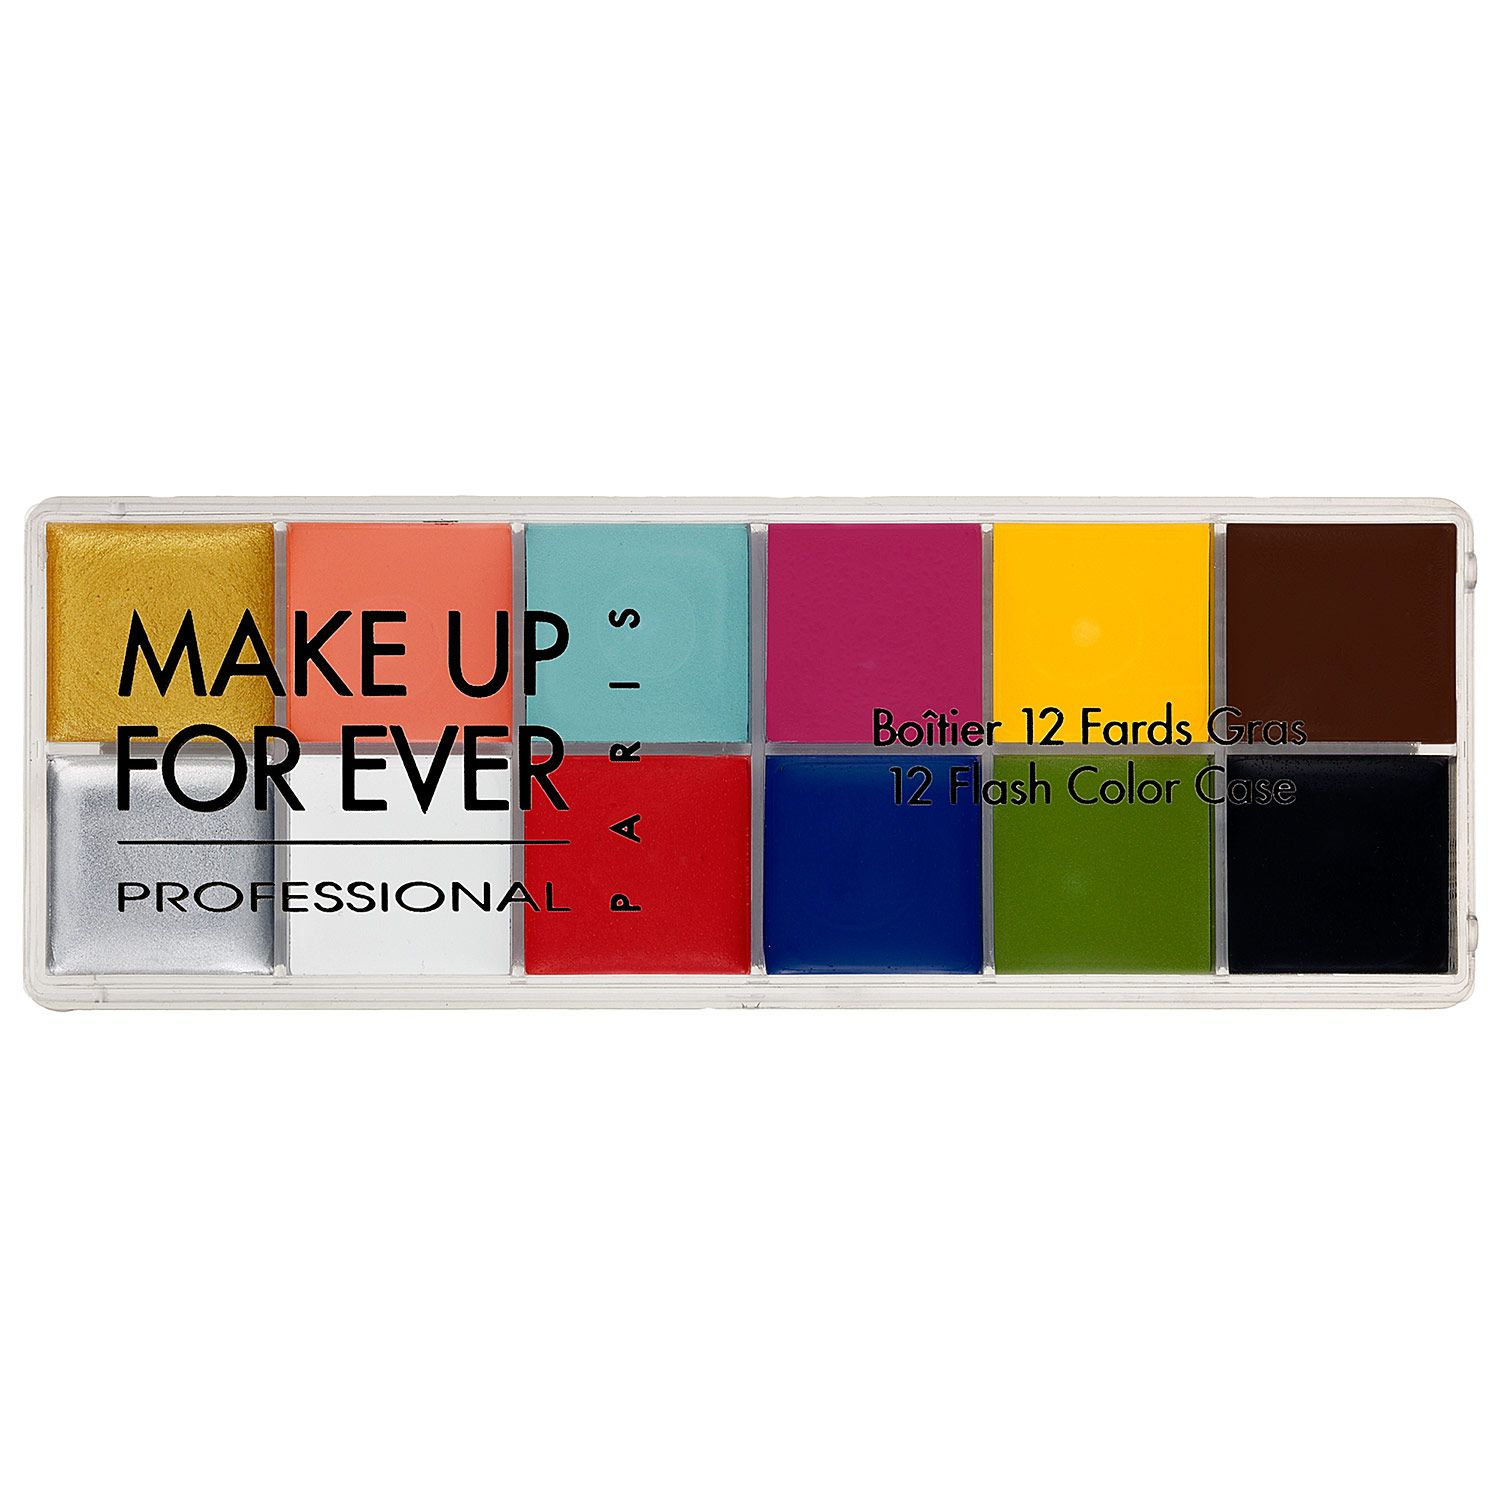 MAKE UP FOR EVER 12 Flash Color Case Sephora